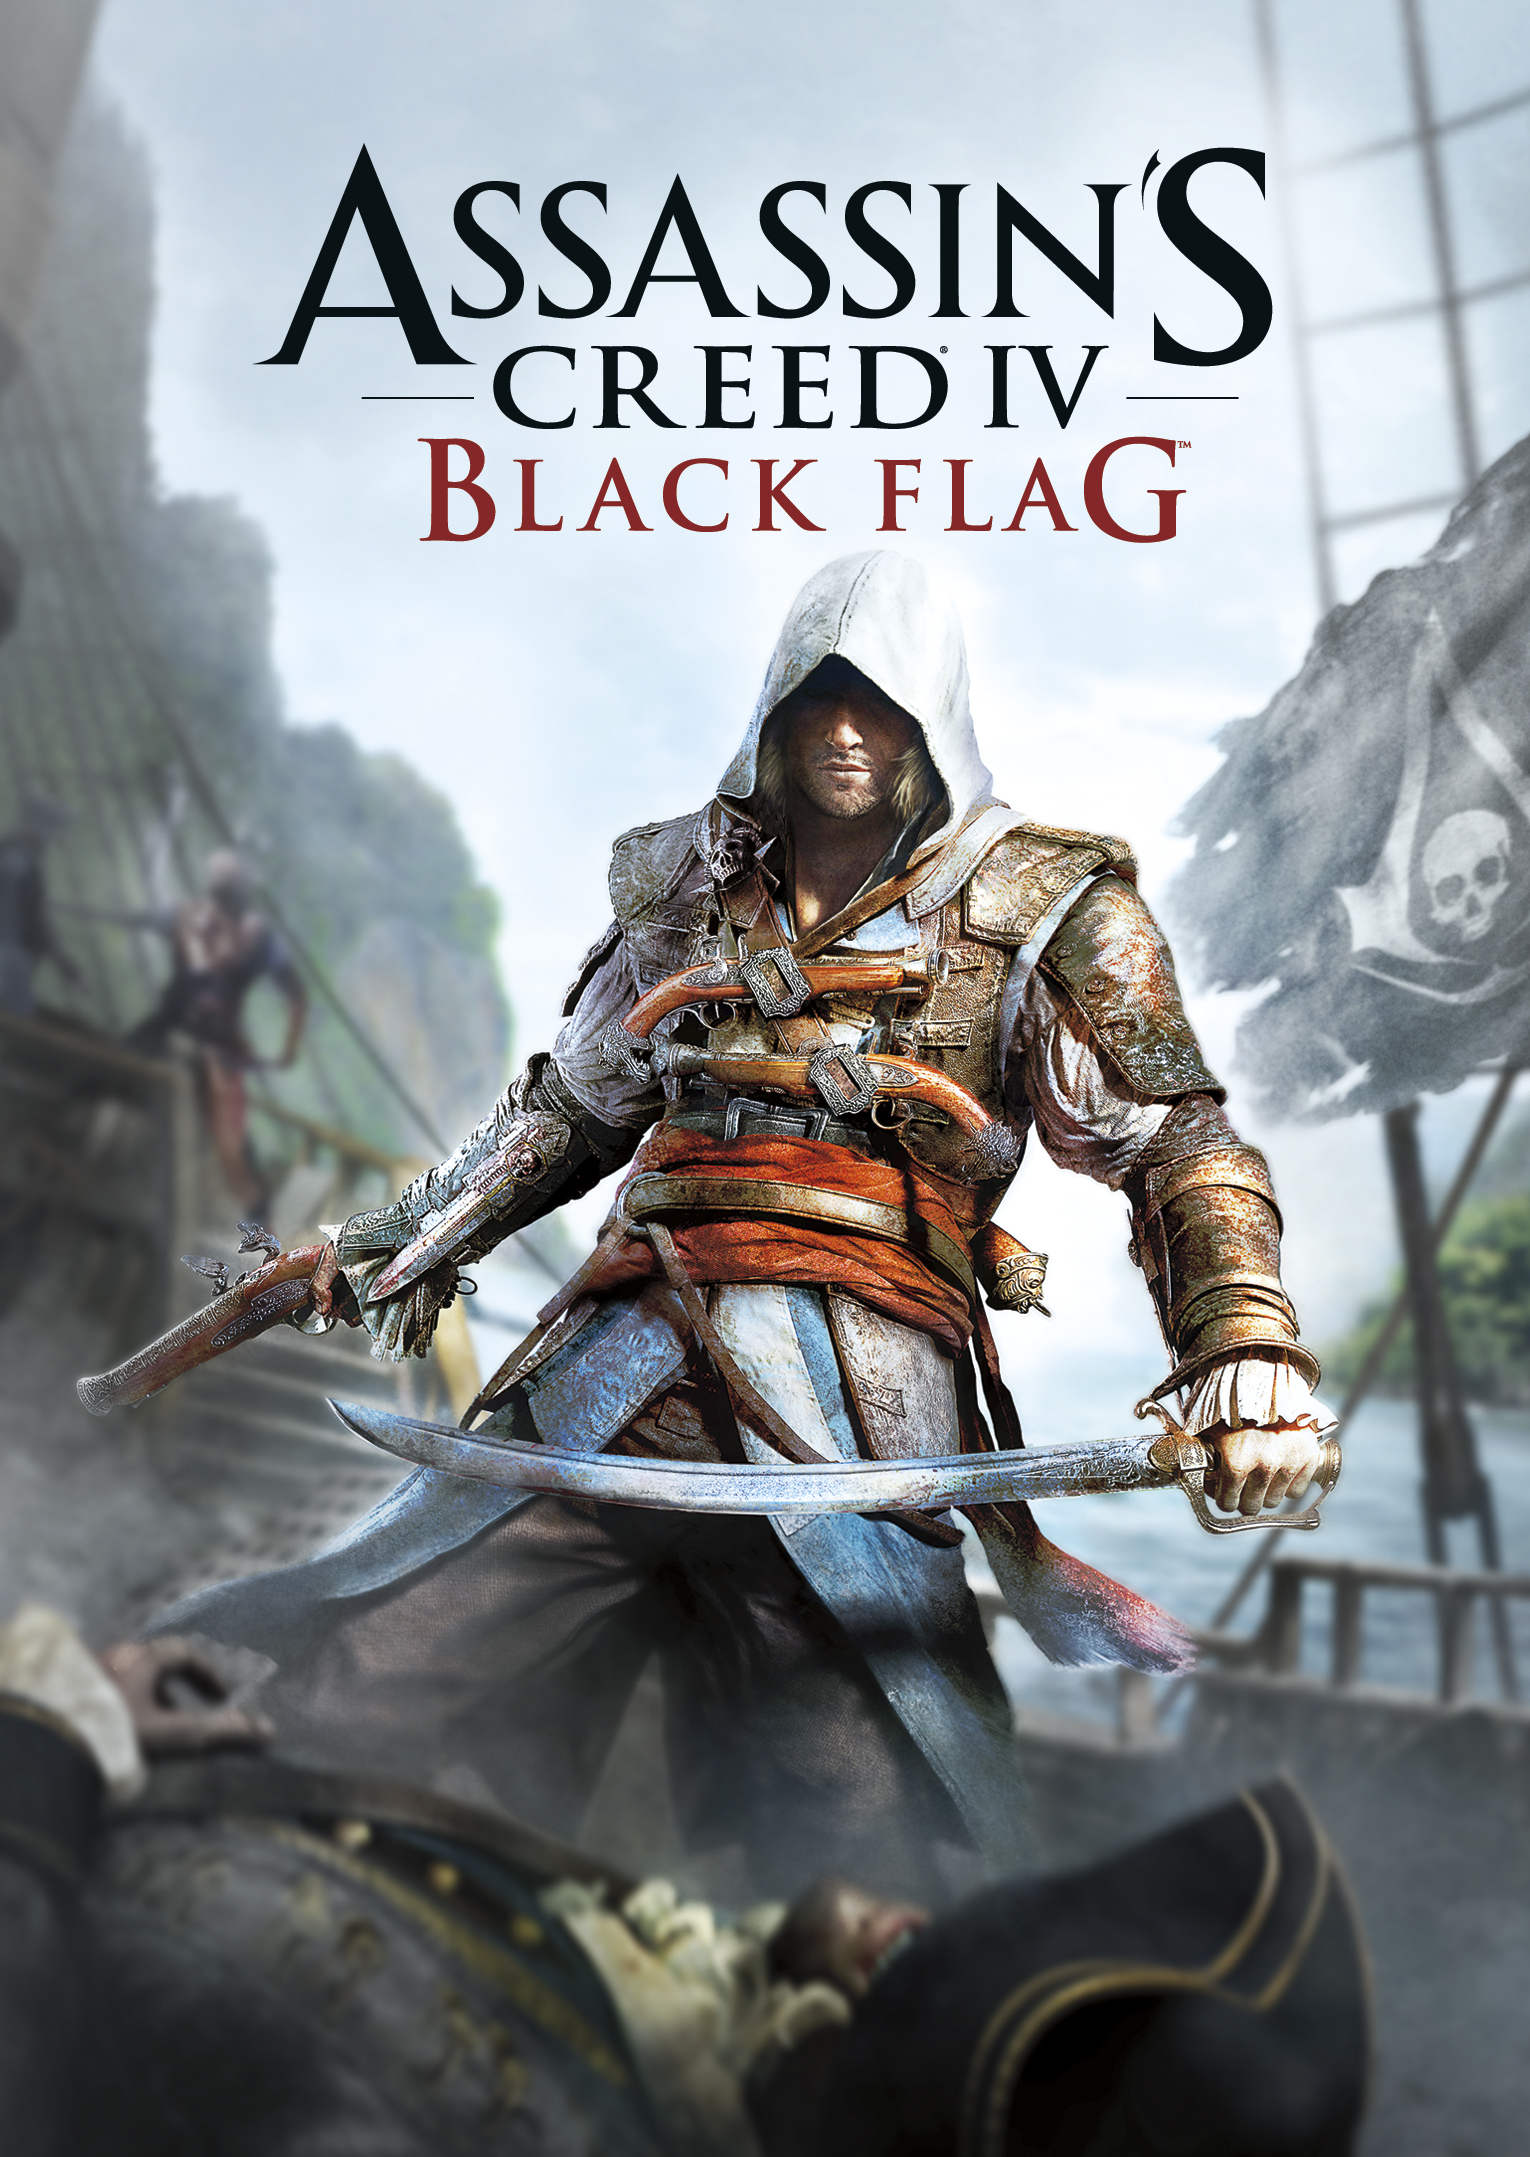 Assassins Creed IV  Black Flag is More Pirate Adventure Than DN1ycxBb